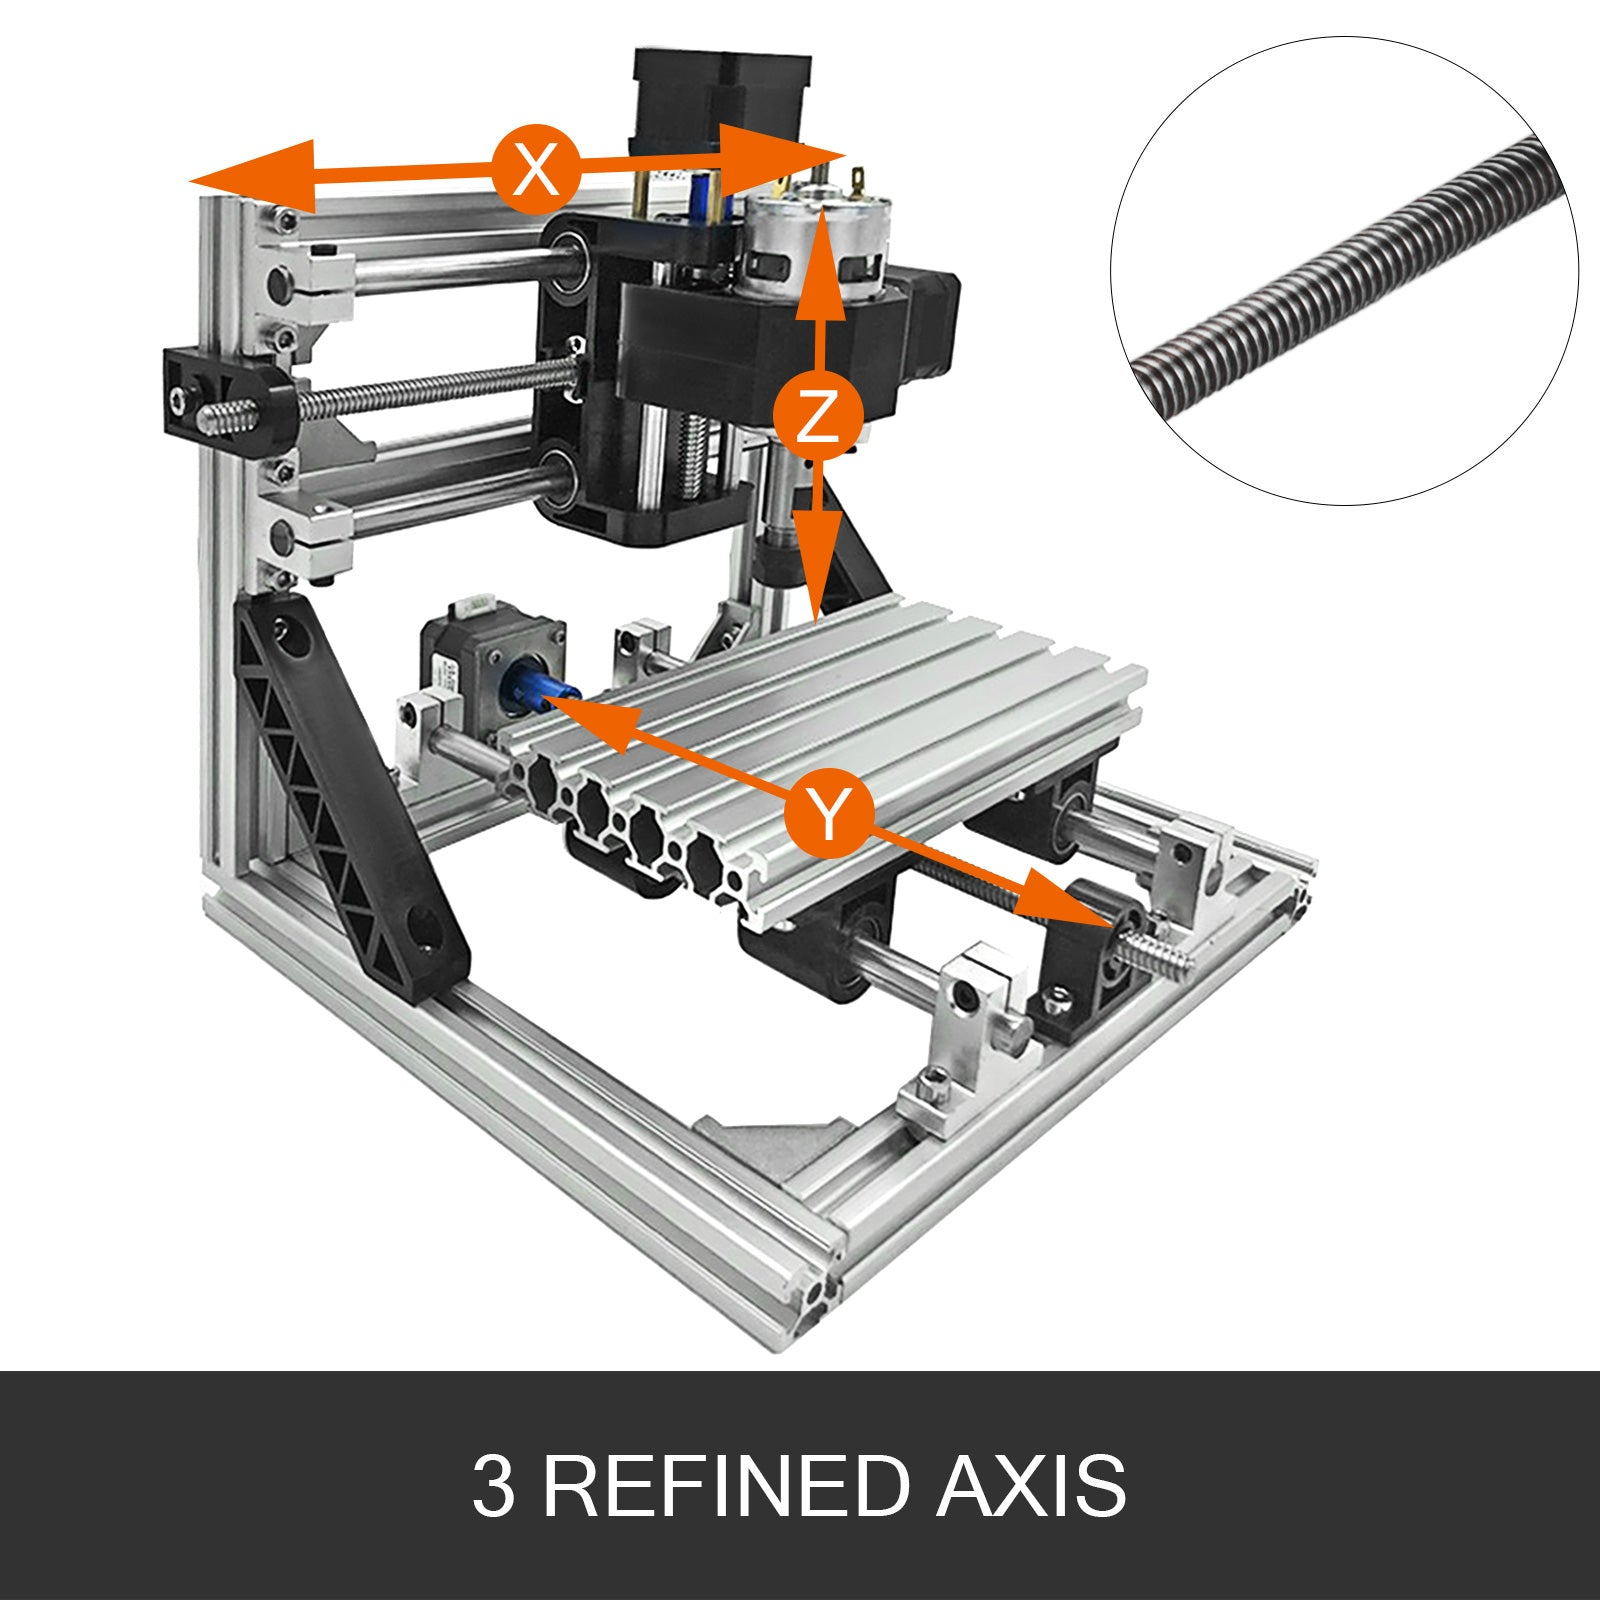 3 Axis Cnc Router Kit 1610 Engraver T8 Screw Ttl Injection Molding Material